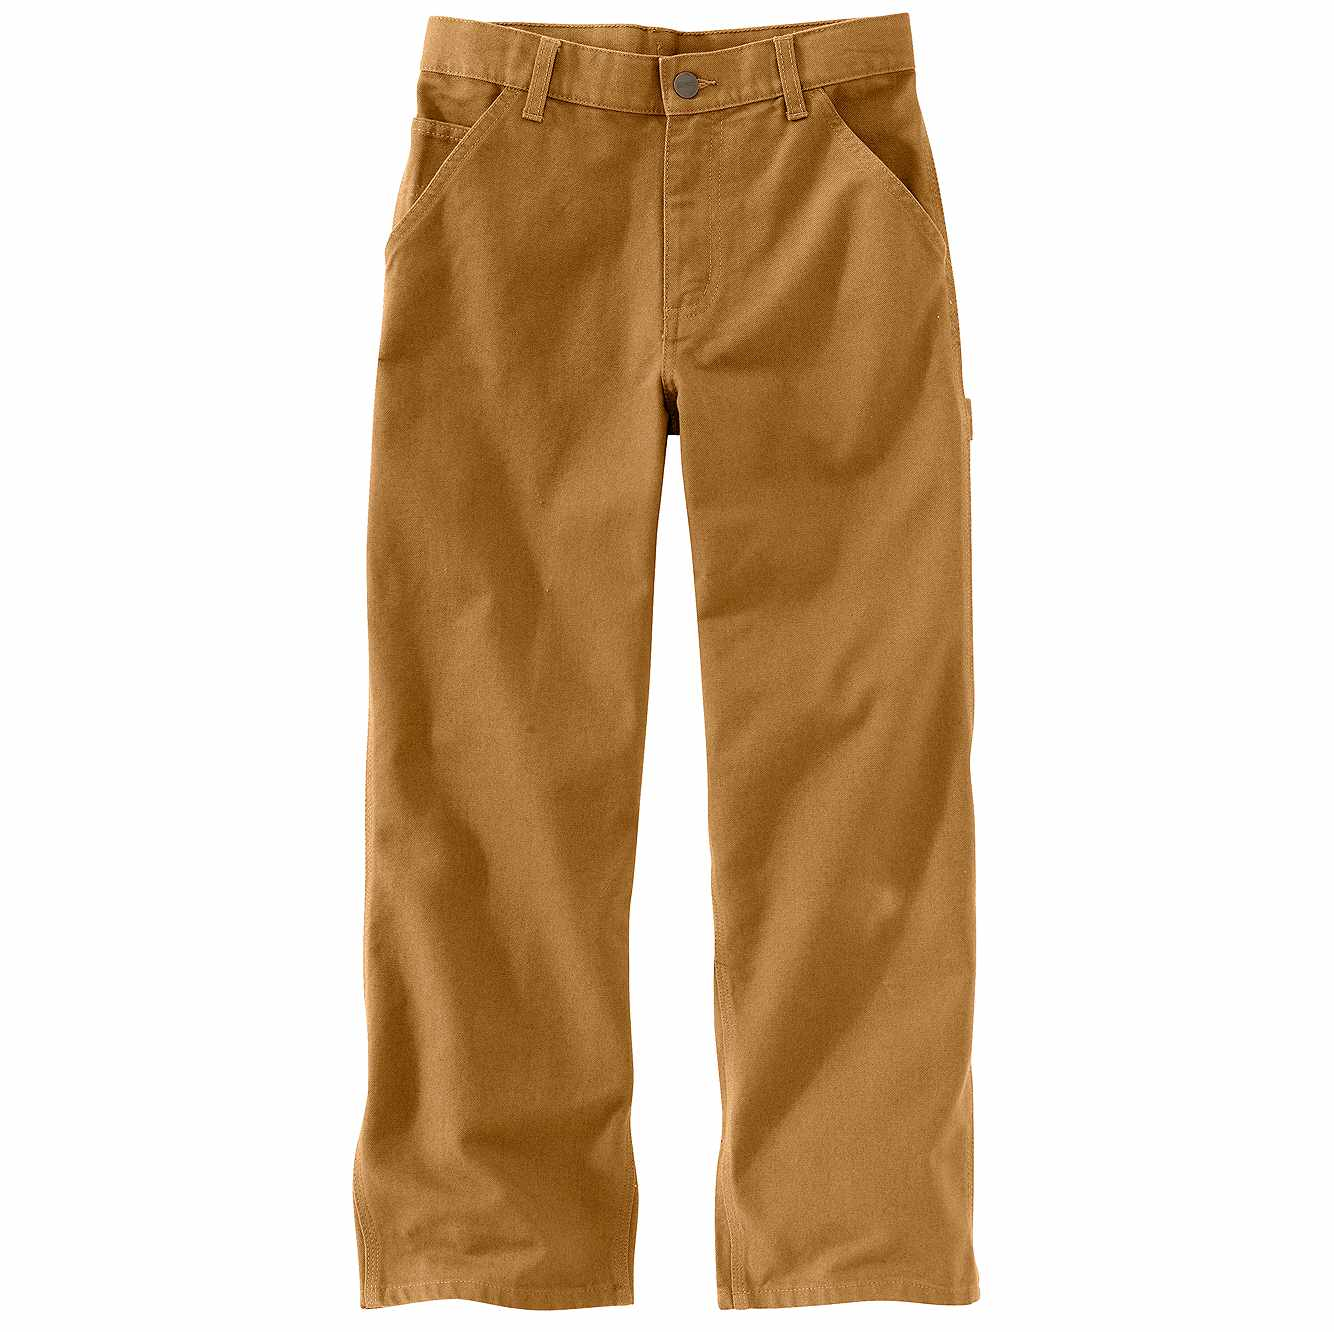 Picture of Duck Dungaree Sizes 8-16 in Carhartt Brown